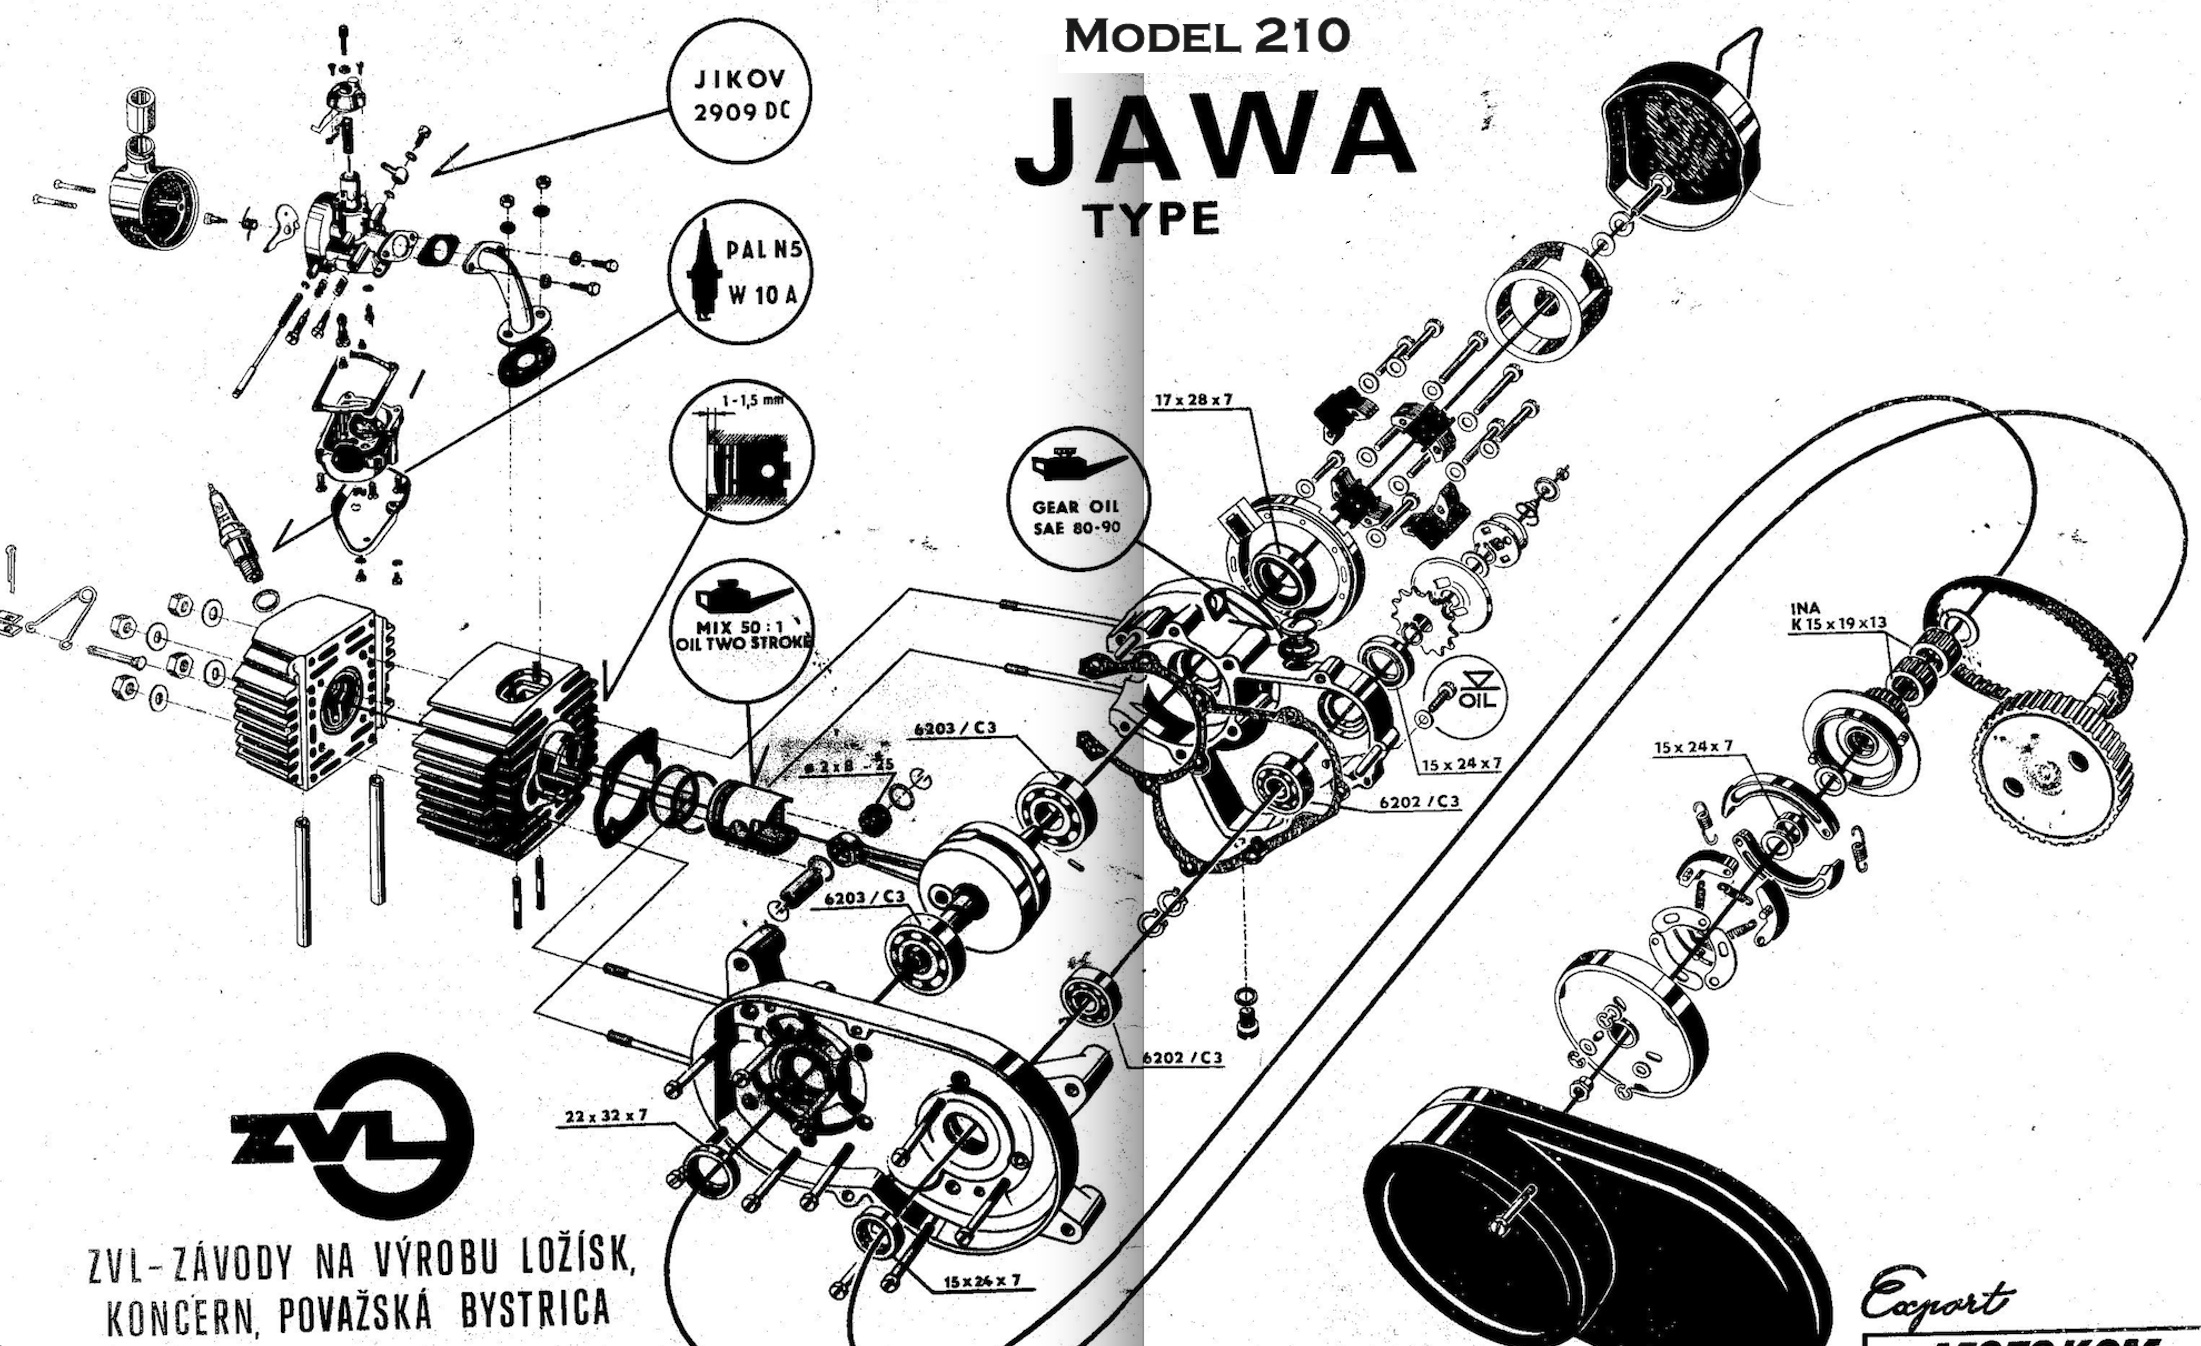 puch moped wiring diagram, tomos moped wiring diagram, kinetic moped wiring diagram, sachs moped wiring diagram, on jawa moped wiring diagram